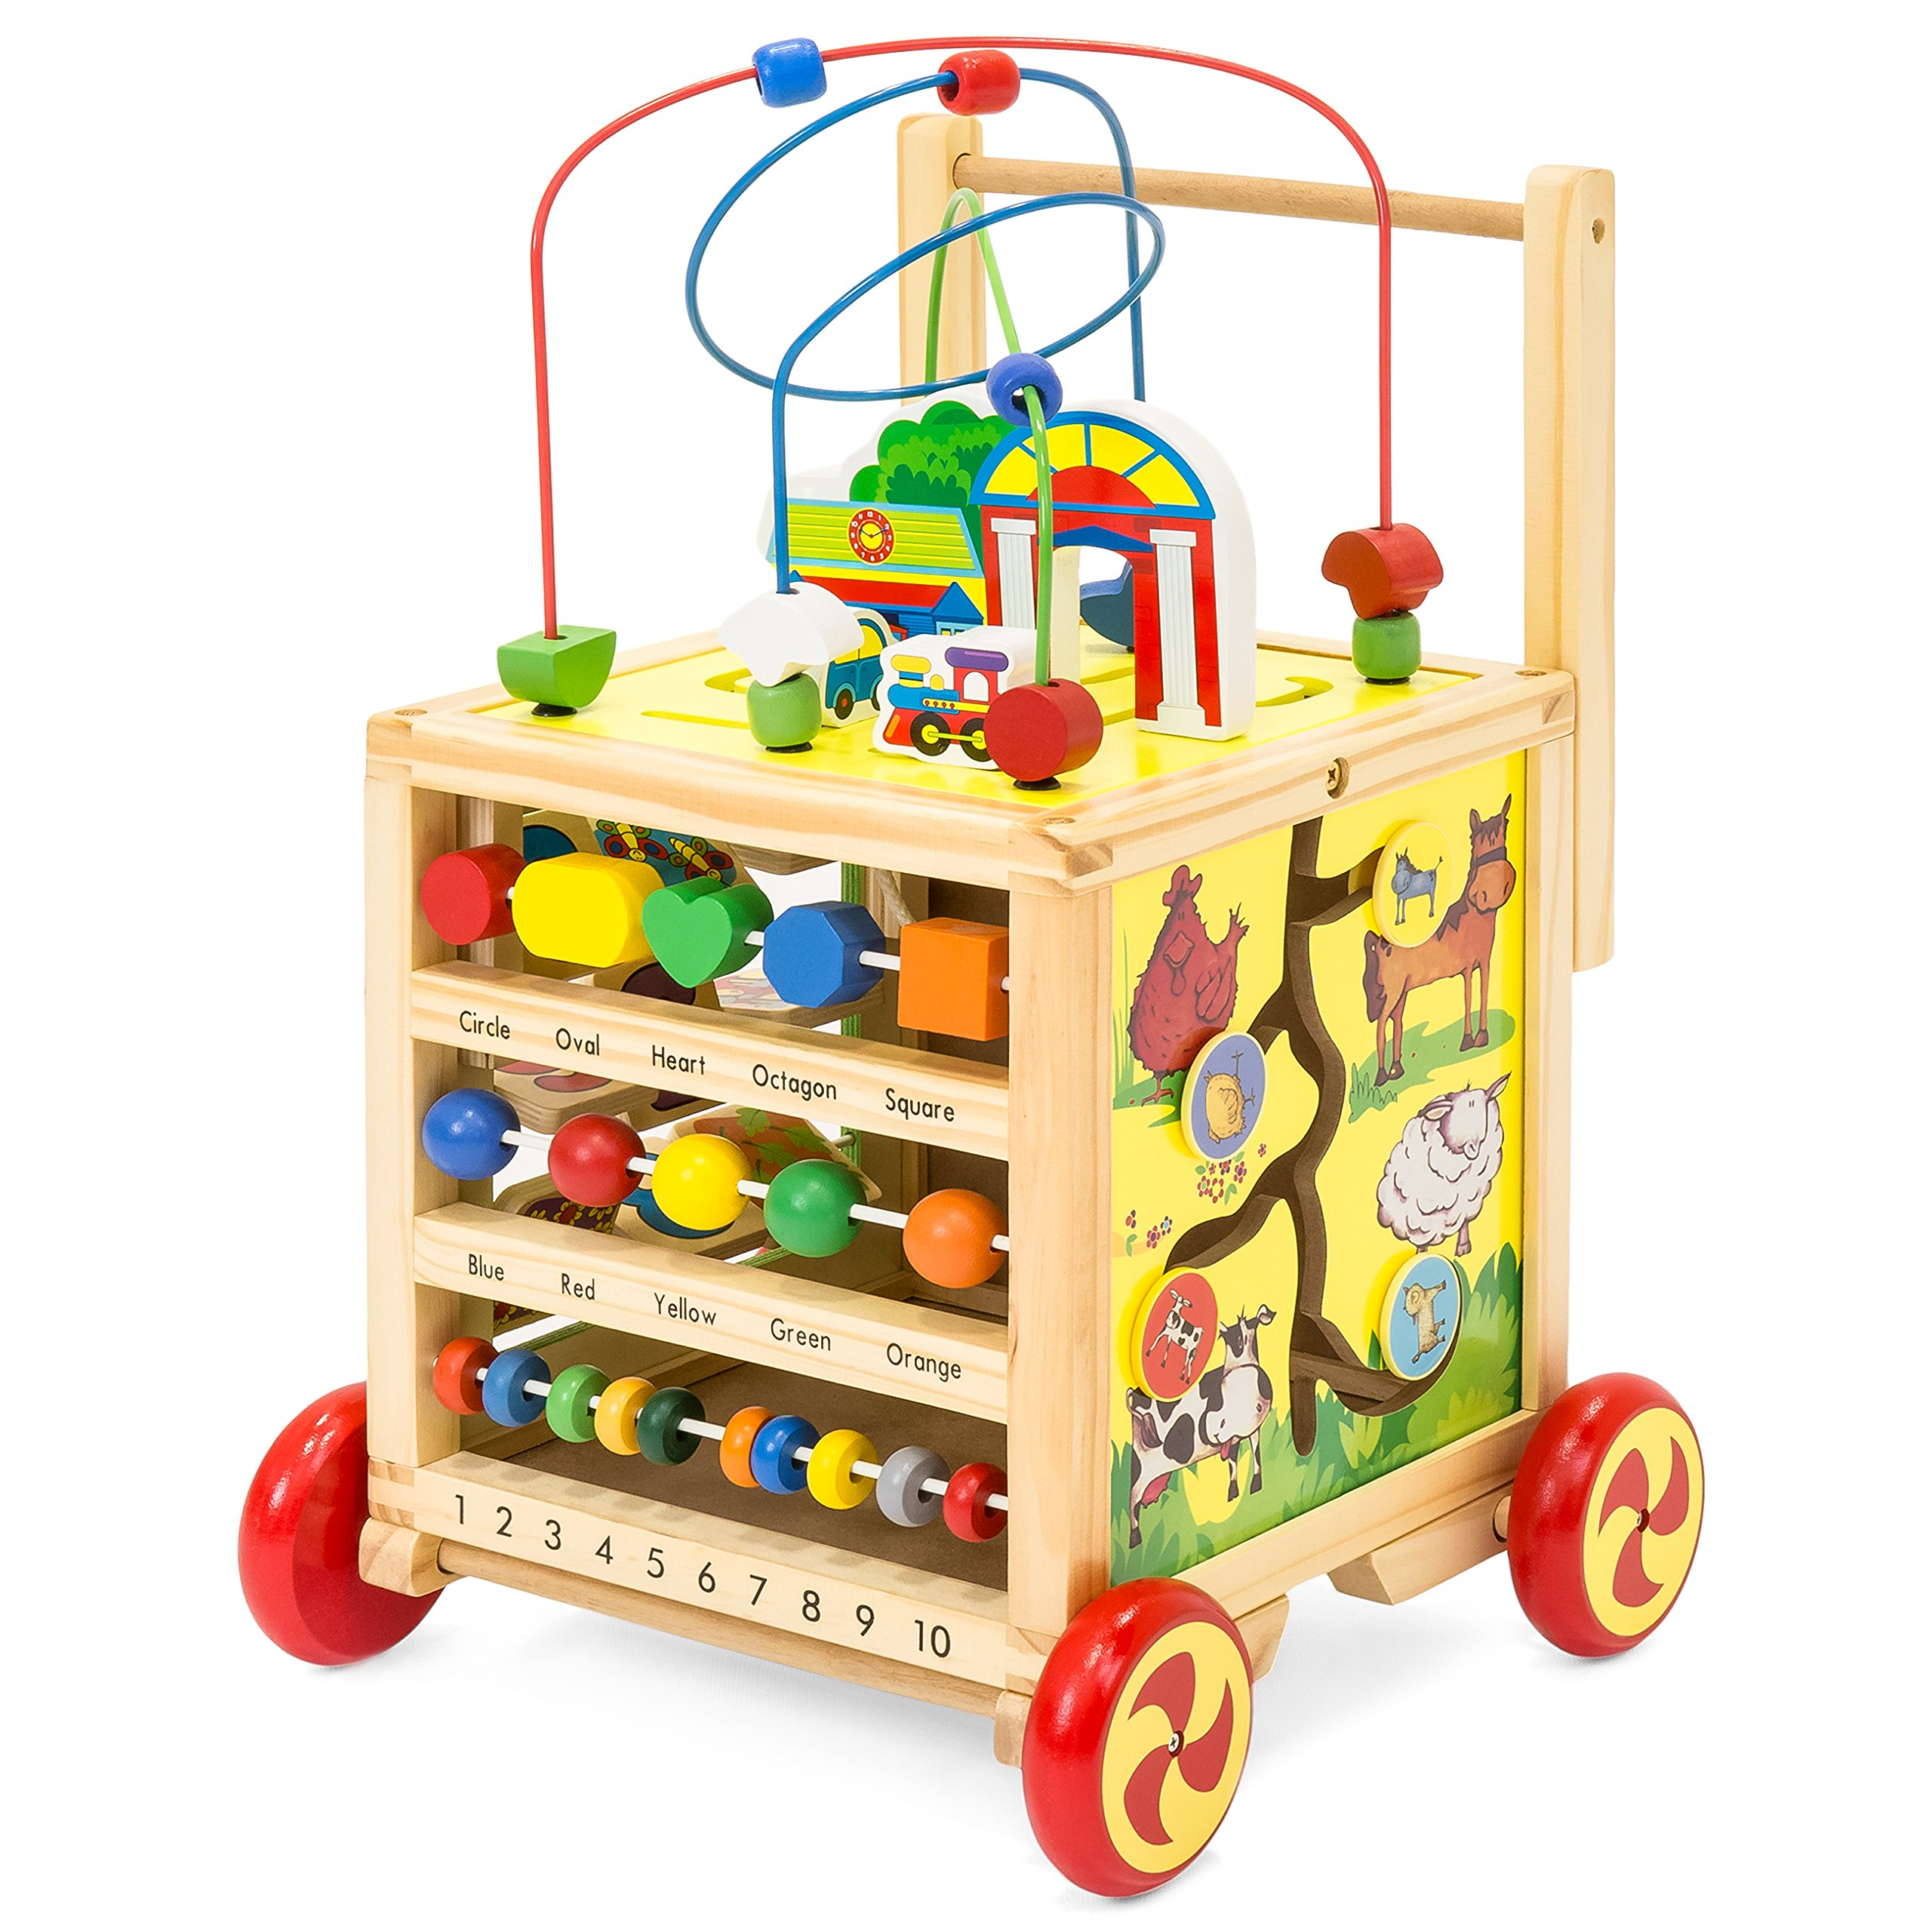 Best Choice Products 5-in-1 Educational Wooden Toy Bead Maze Learning Activity Cube Set by Best Choice Products (Image #1)